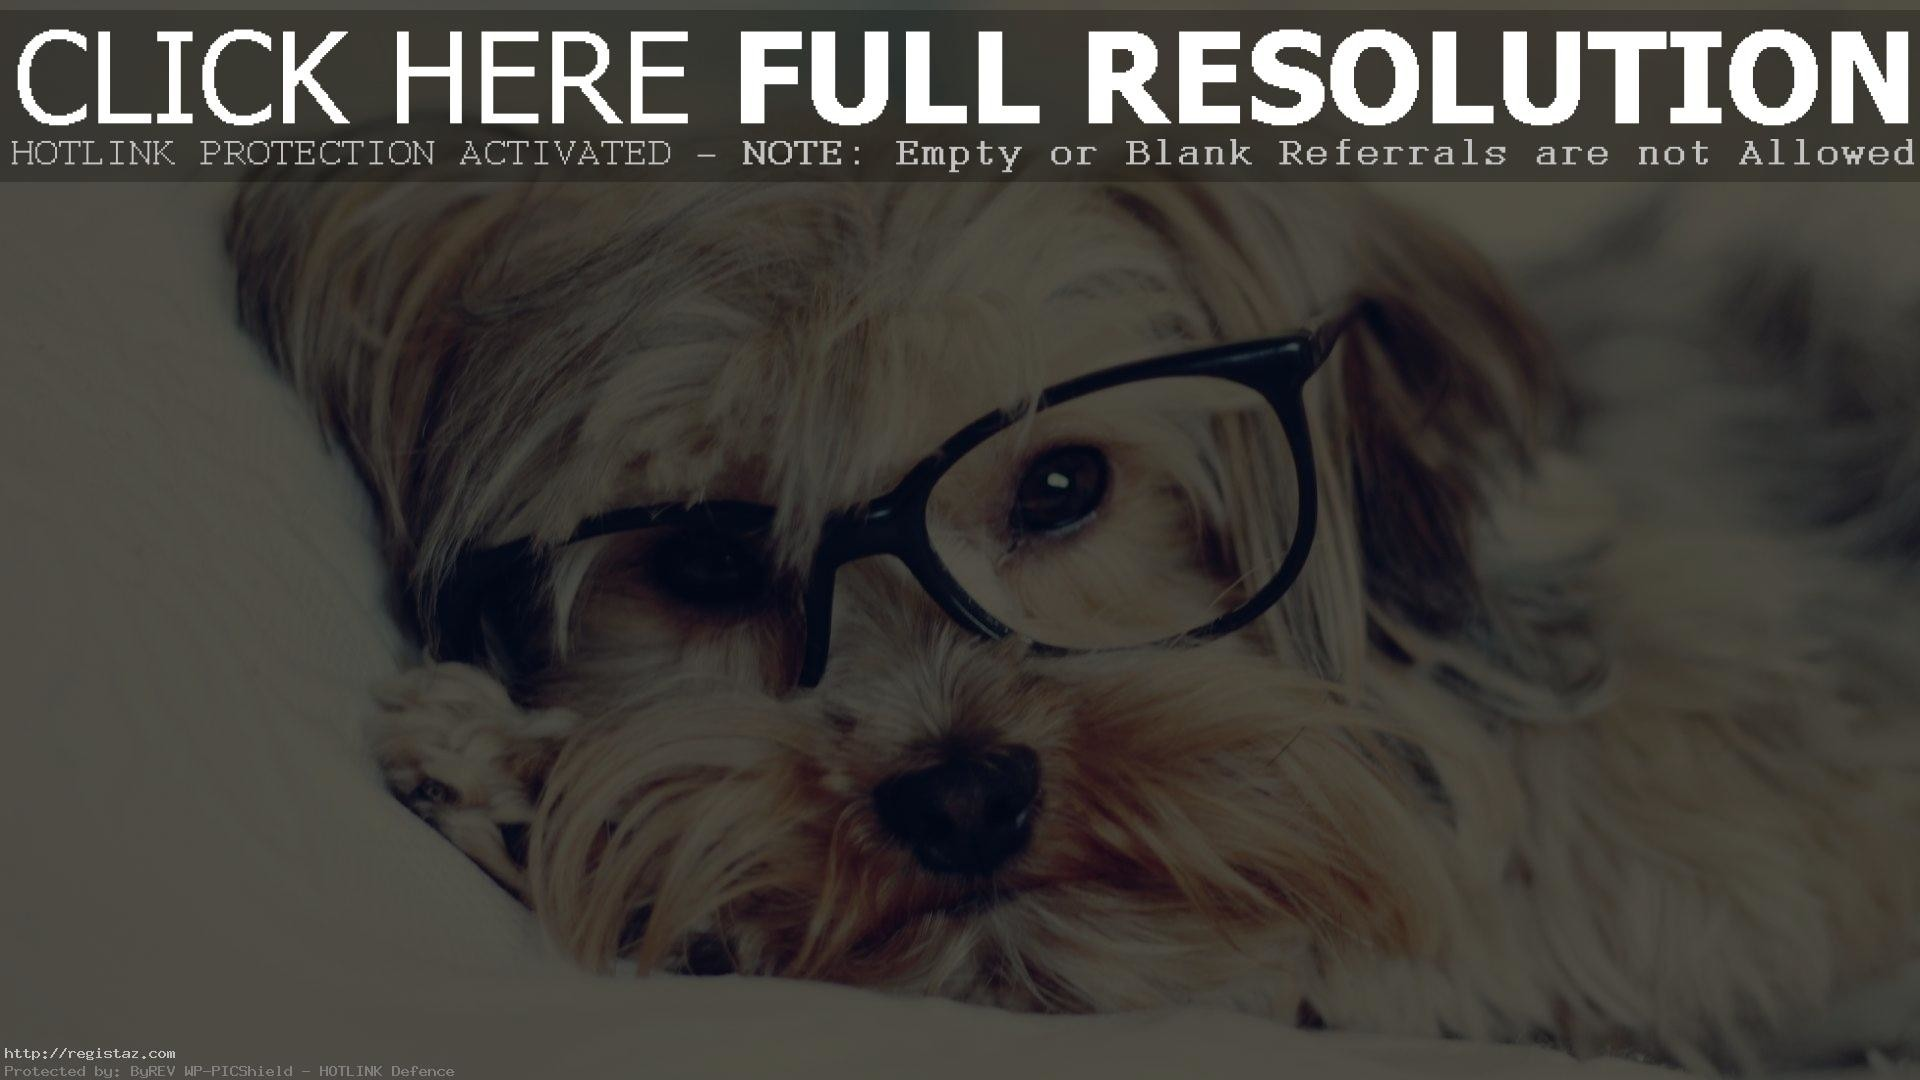 1920x1080 yorkshire terrier puppies sleep with glasses wallpaper